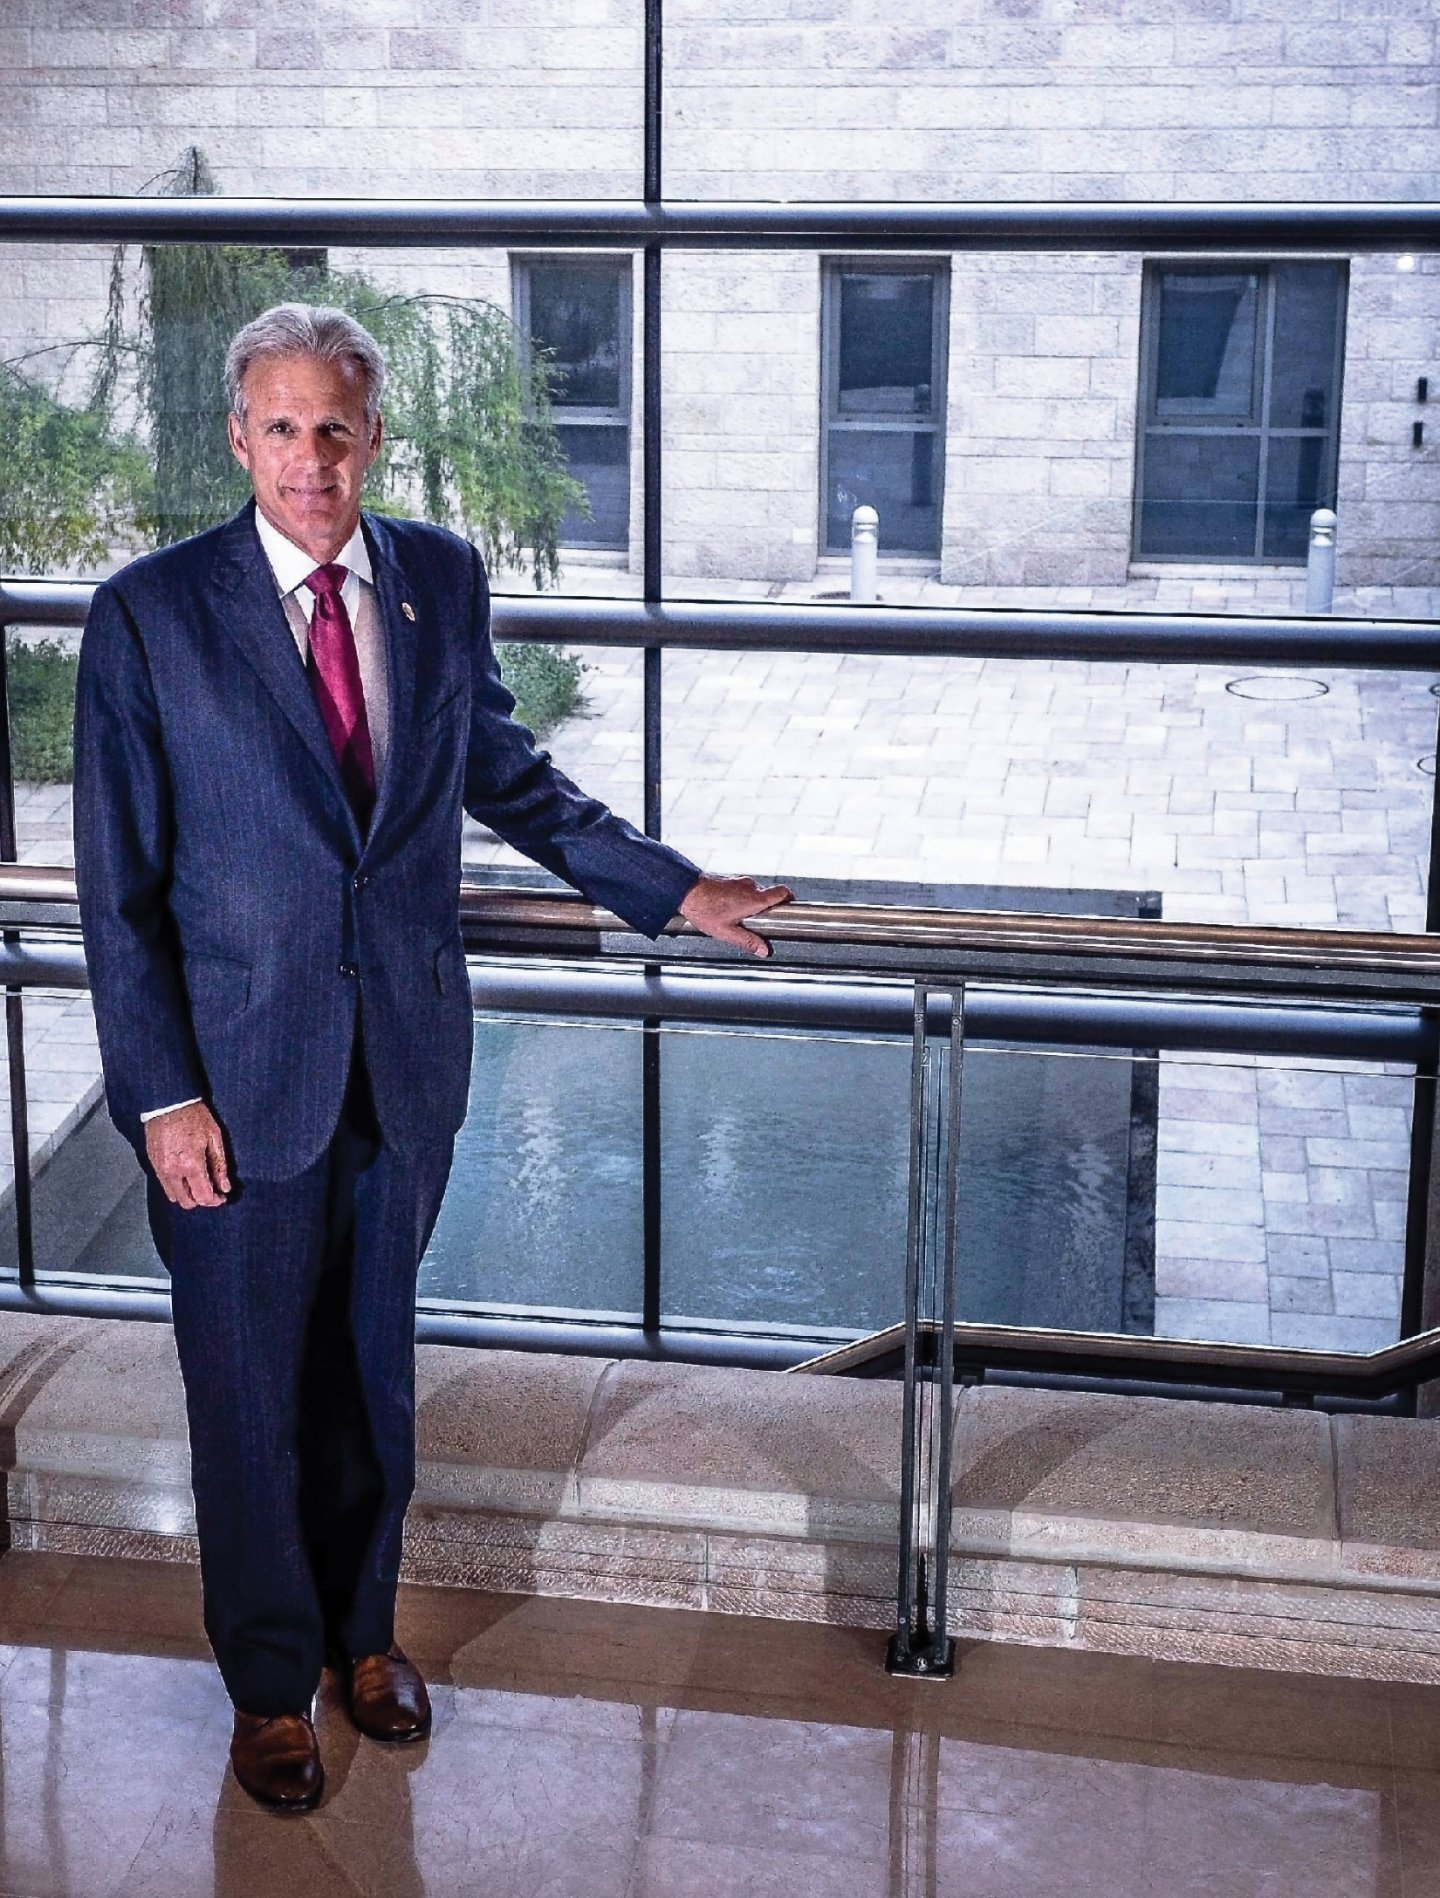 Michael Oren standing in front of a window